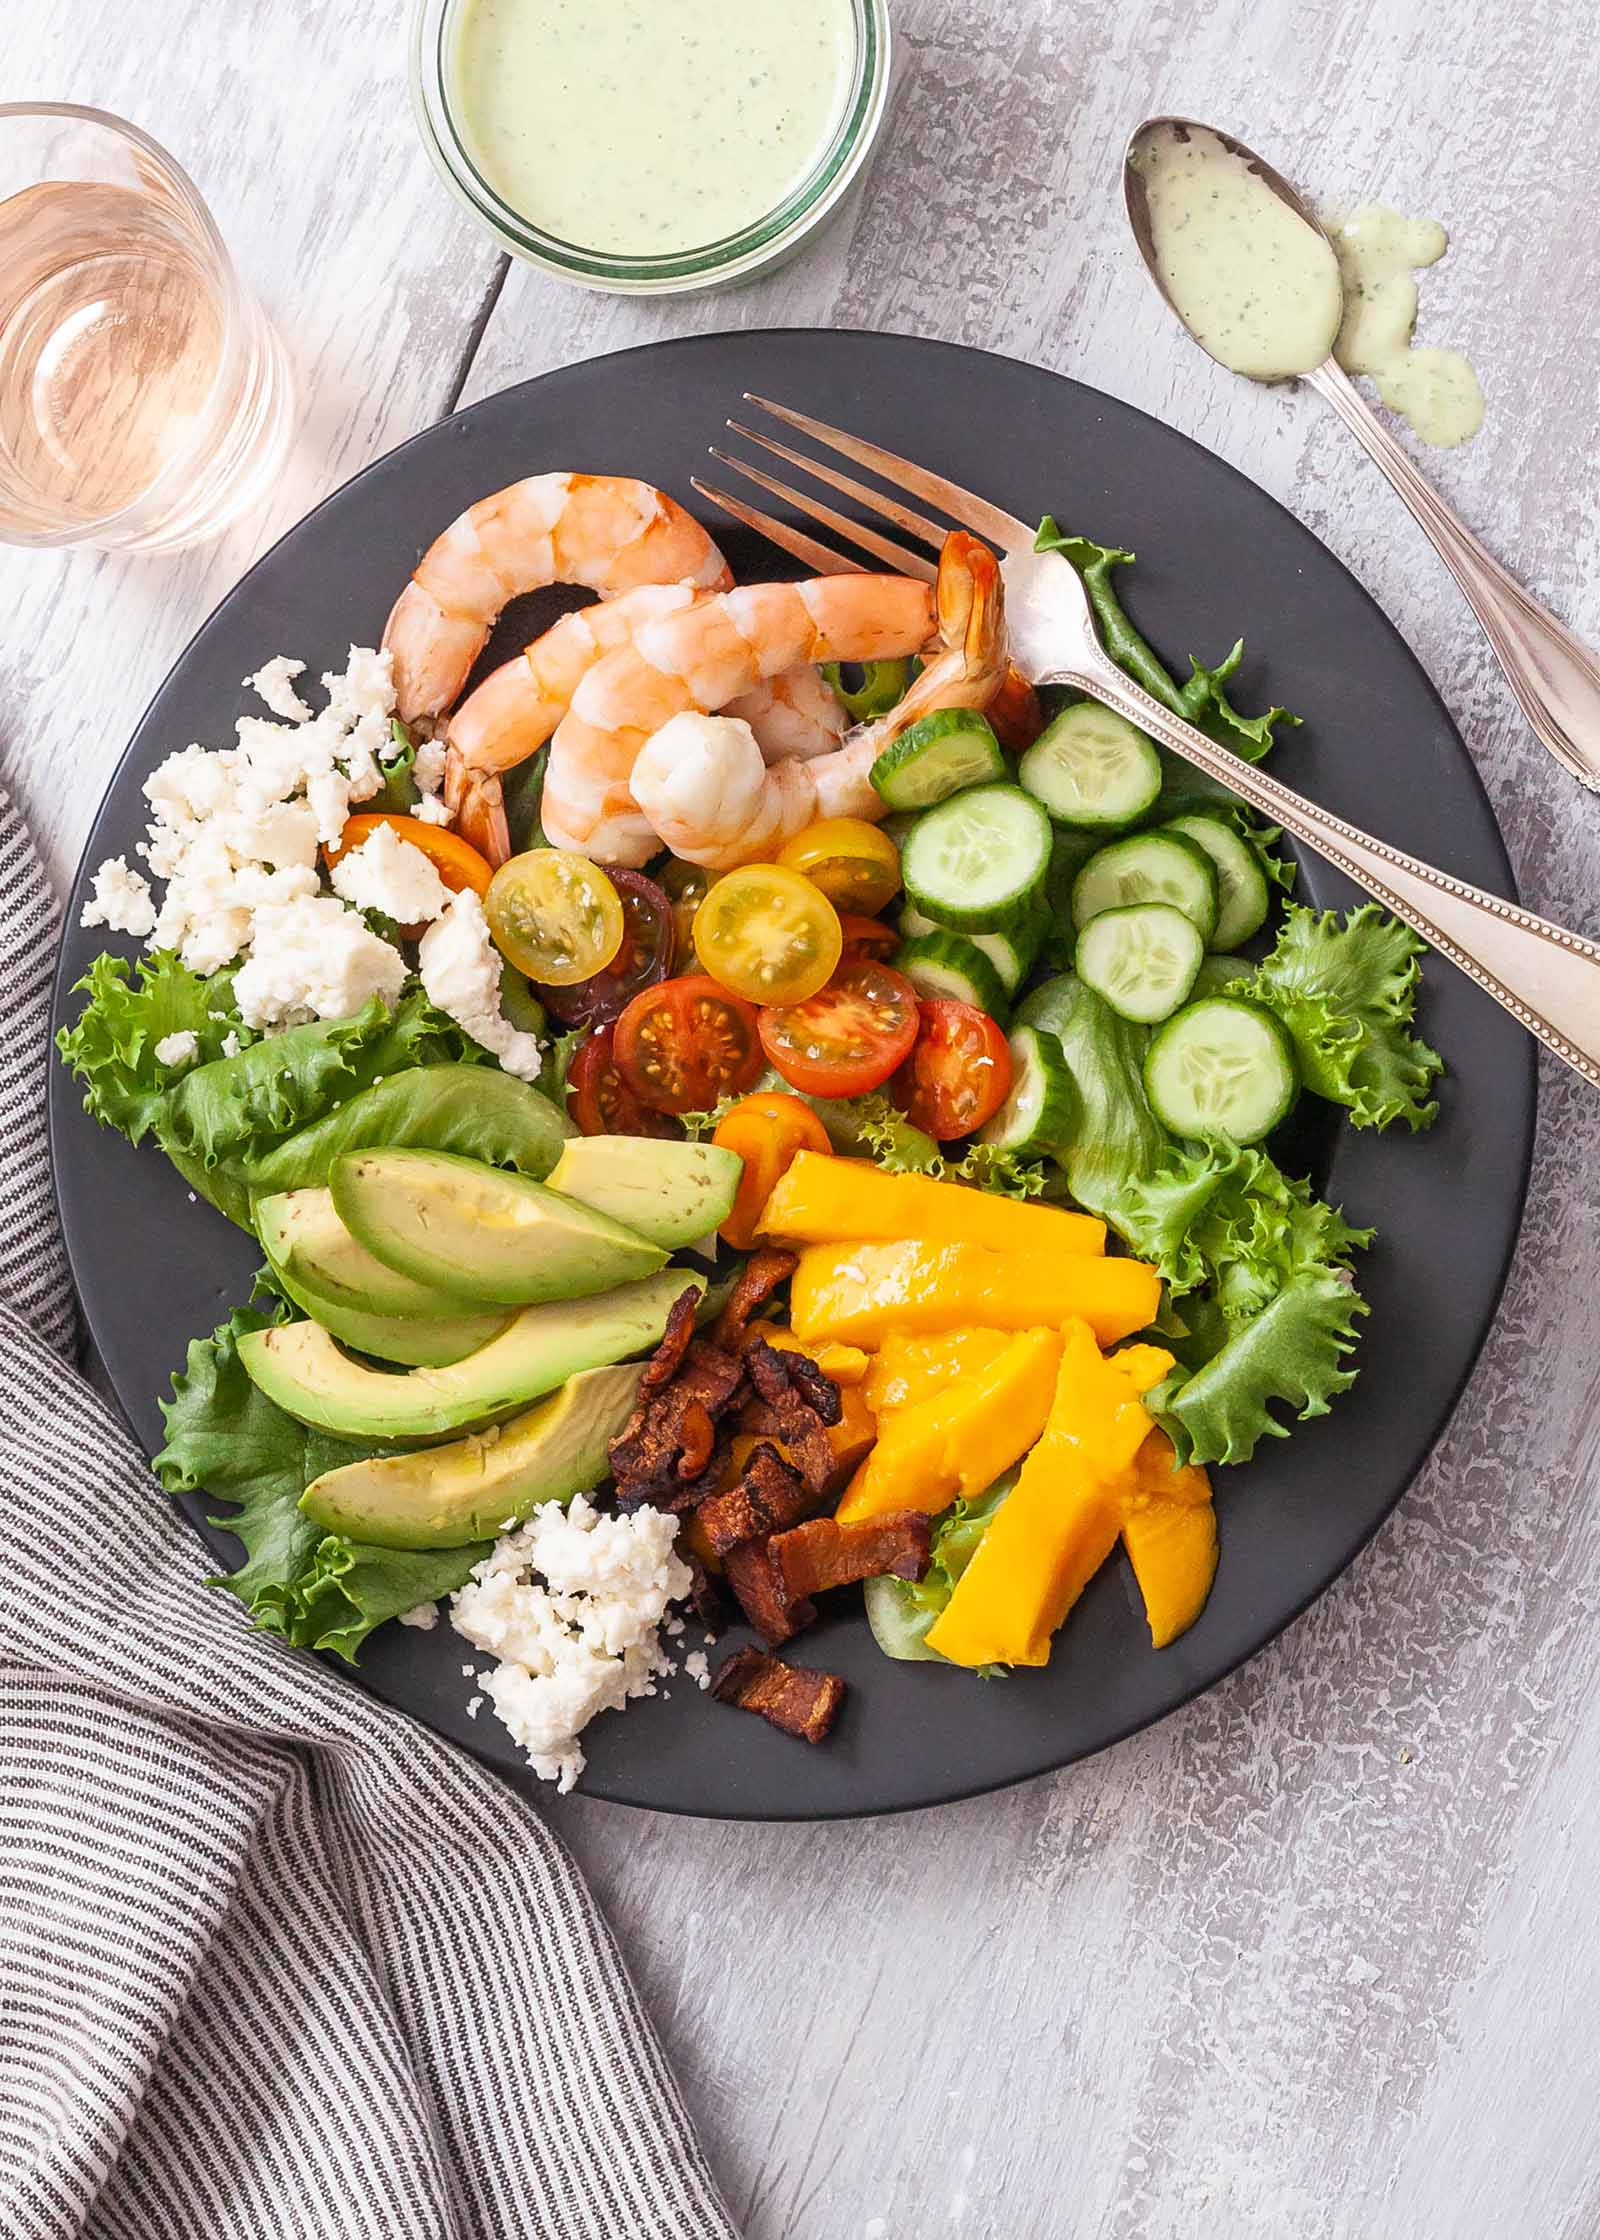 Cobb Salad with Basil Dressing - shrimp and vegetables on gray plate with glass of rose